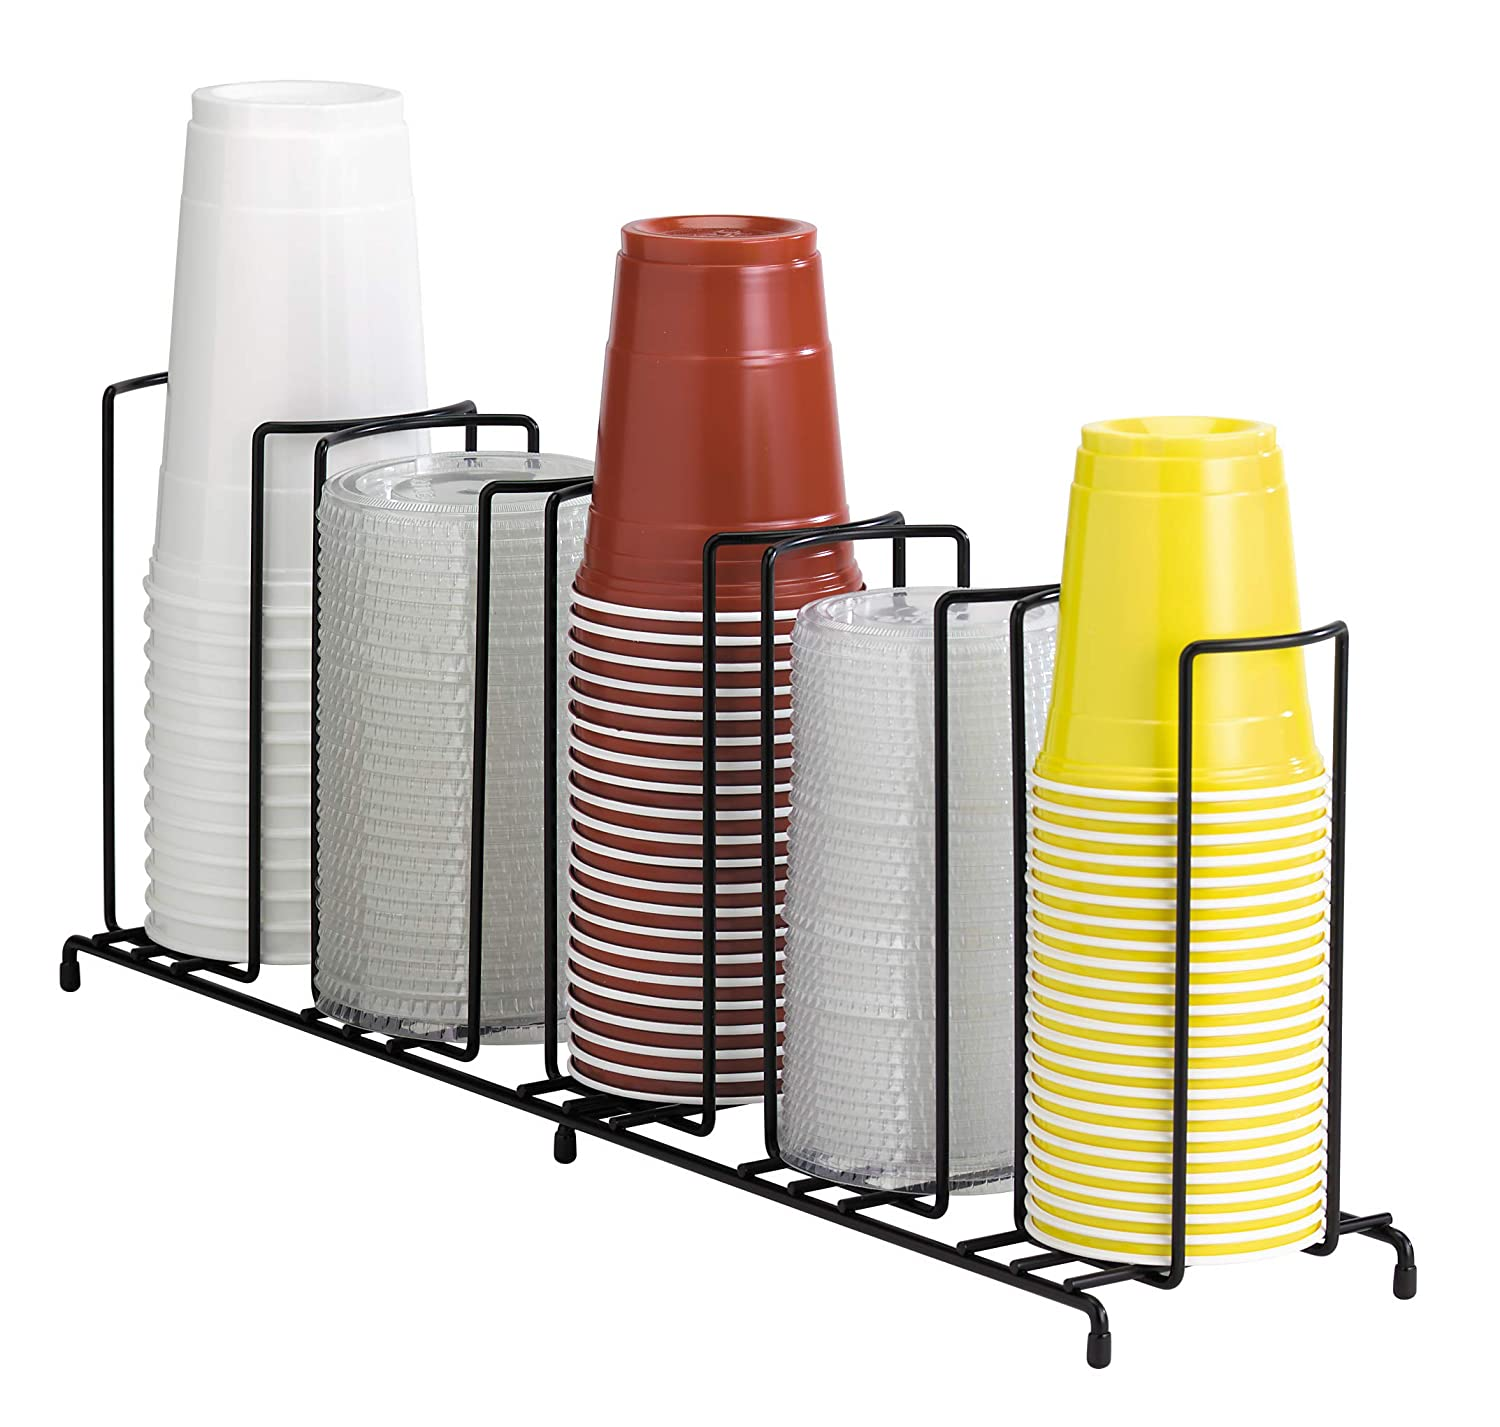 DISPENSE-RITE WR-3 Dispense-Rite Three Section Wire Rack Cup and Lid Organizer, Black 812483015163